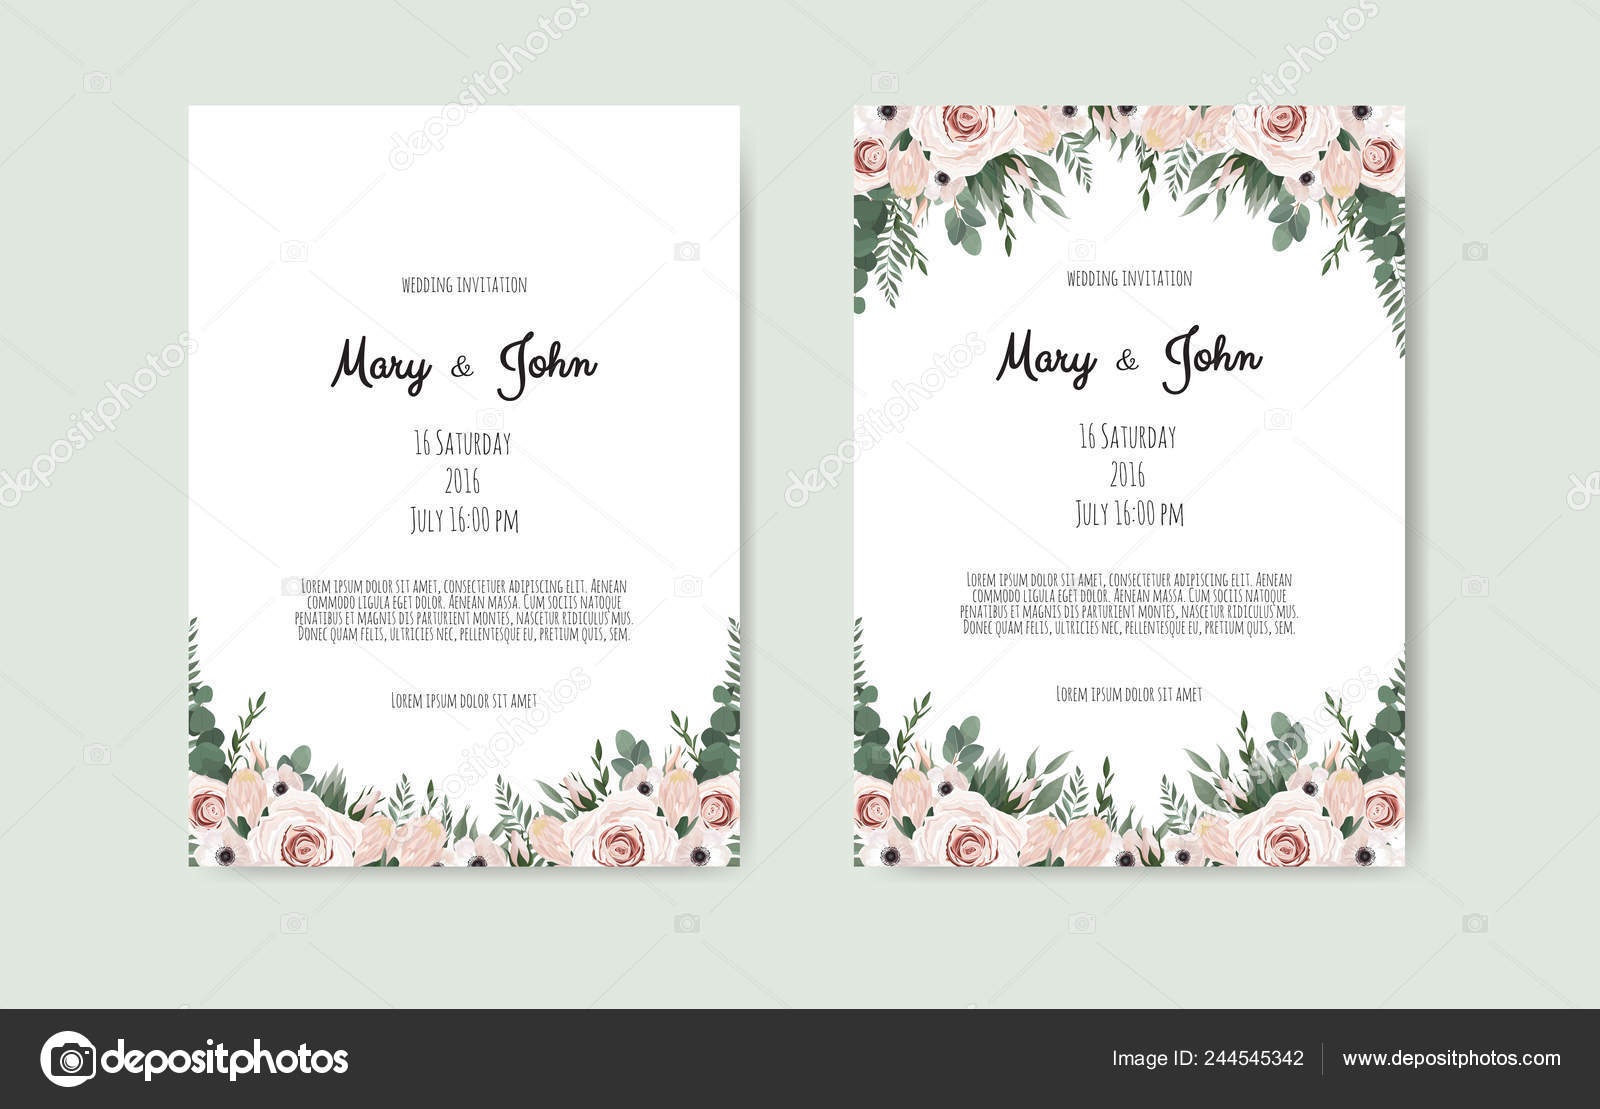 botanical wedding invitation card template design white and pink flowers on white background vector image by c anasteisha vector stock 244545342